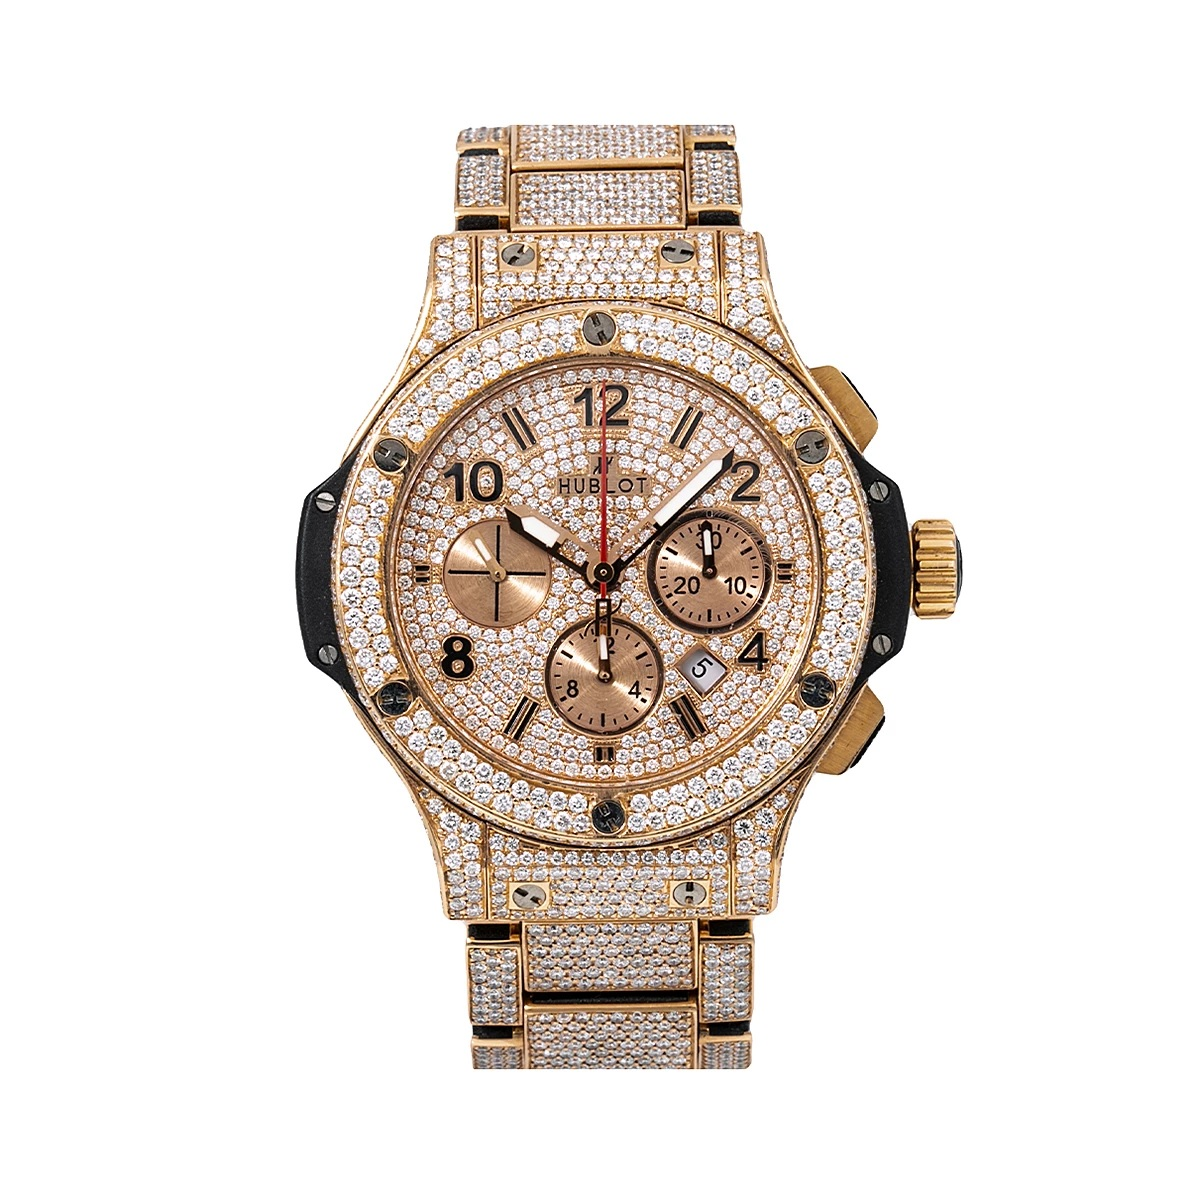 44mm Hublot Mens Diamond Watch Fully Iced Out Big Bang in Rose Gold 18.09ct 44mm Hublot Mens Diamond Watch Fully Iced Out Big Bang in Rose Gold 18.09ct